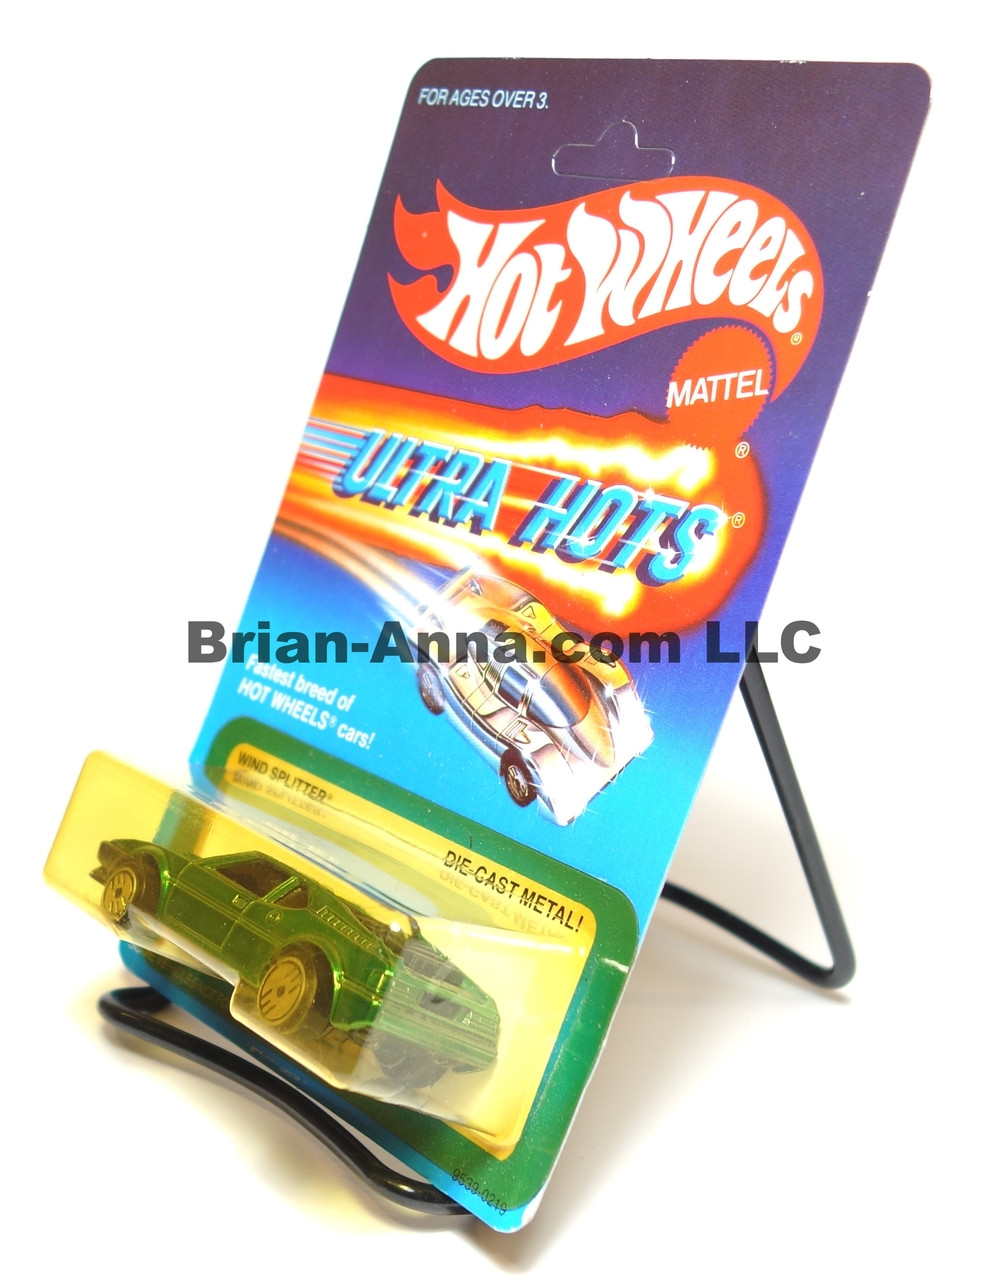 Hot Wheels Ultra Hots Card, Wind Splitter, Green, Ultrahot Wheels, Malaysia base